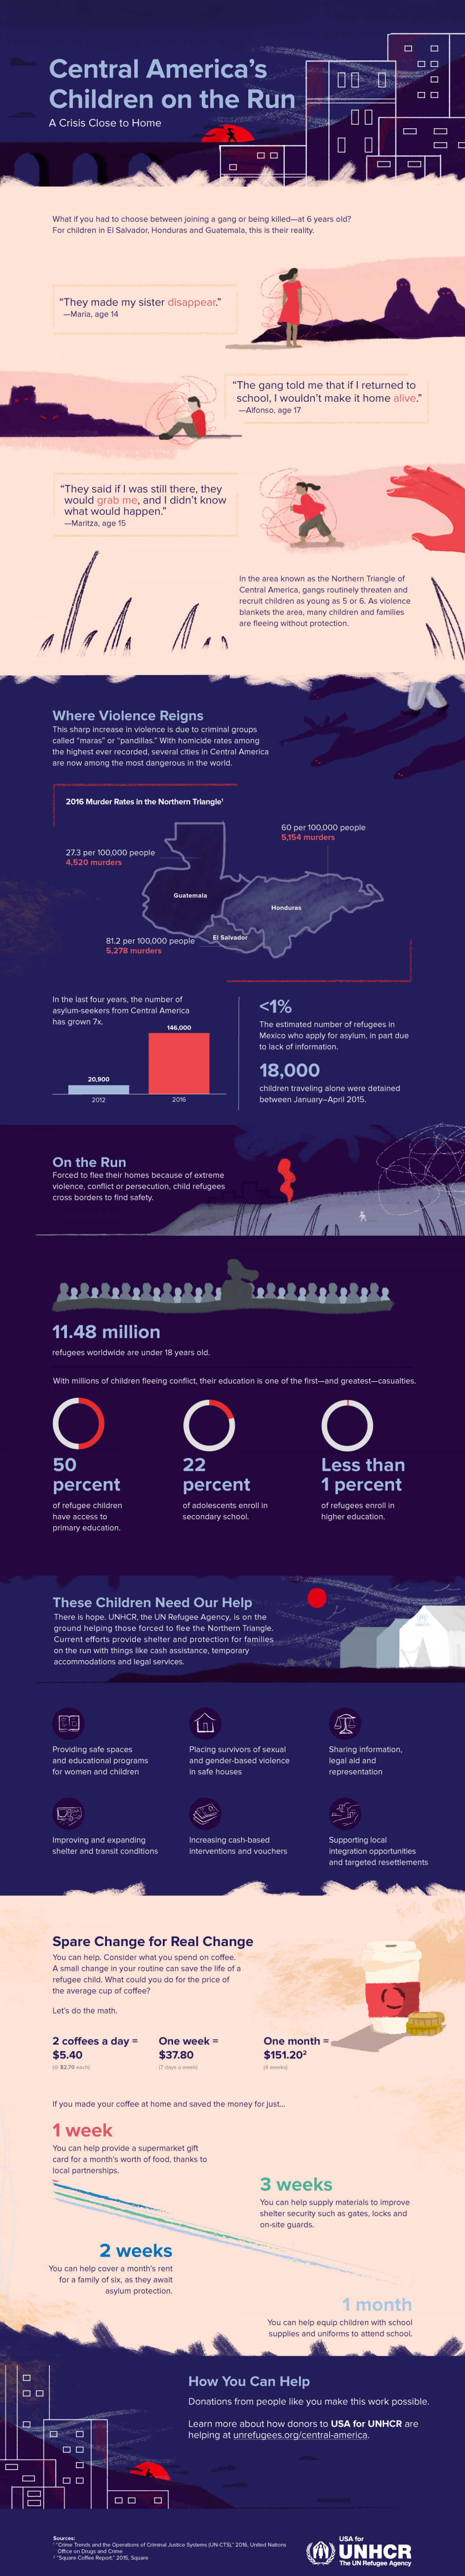 Central America's Children on the Run Infographic